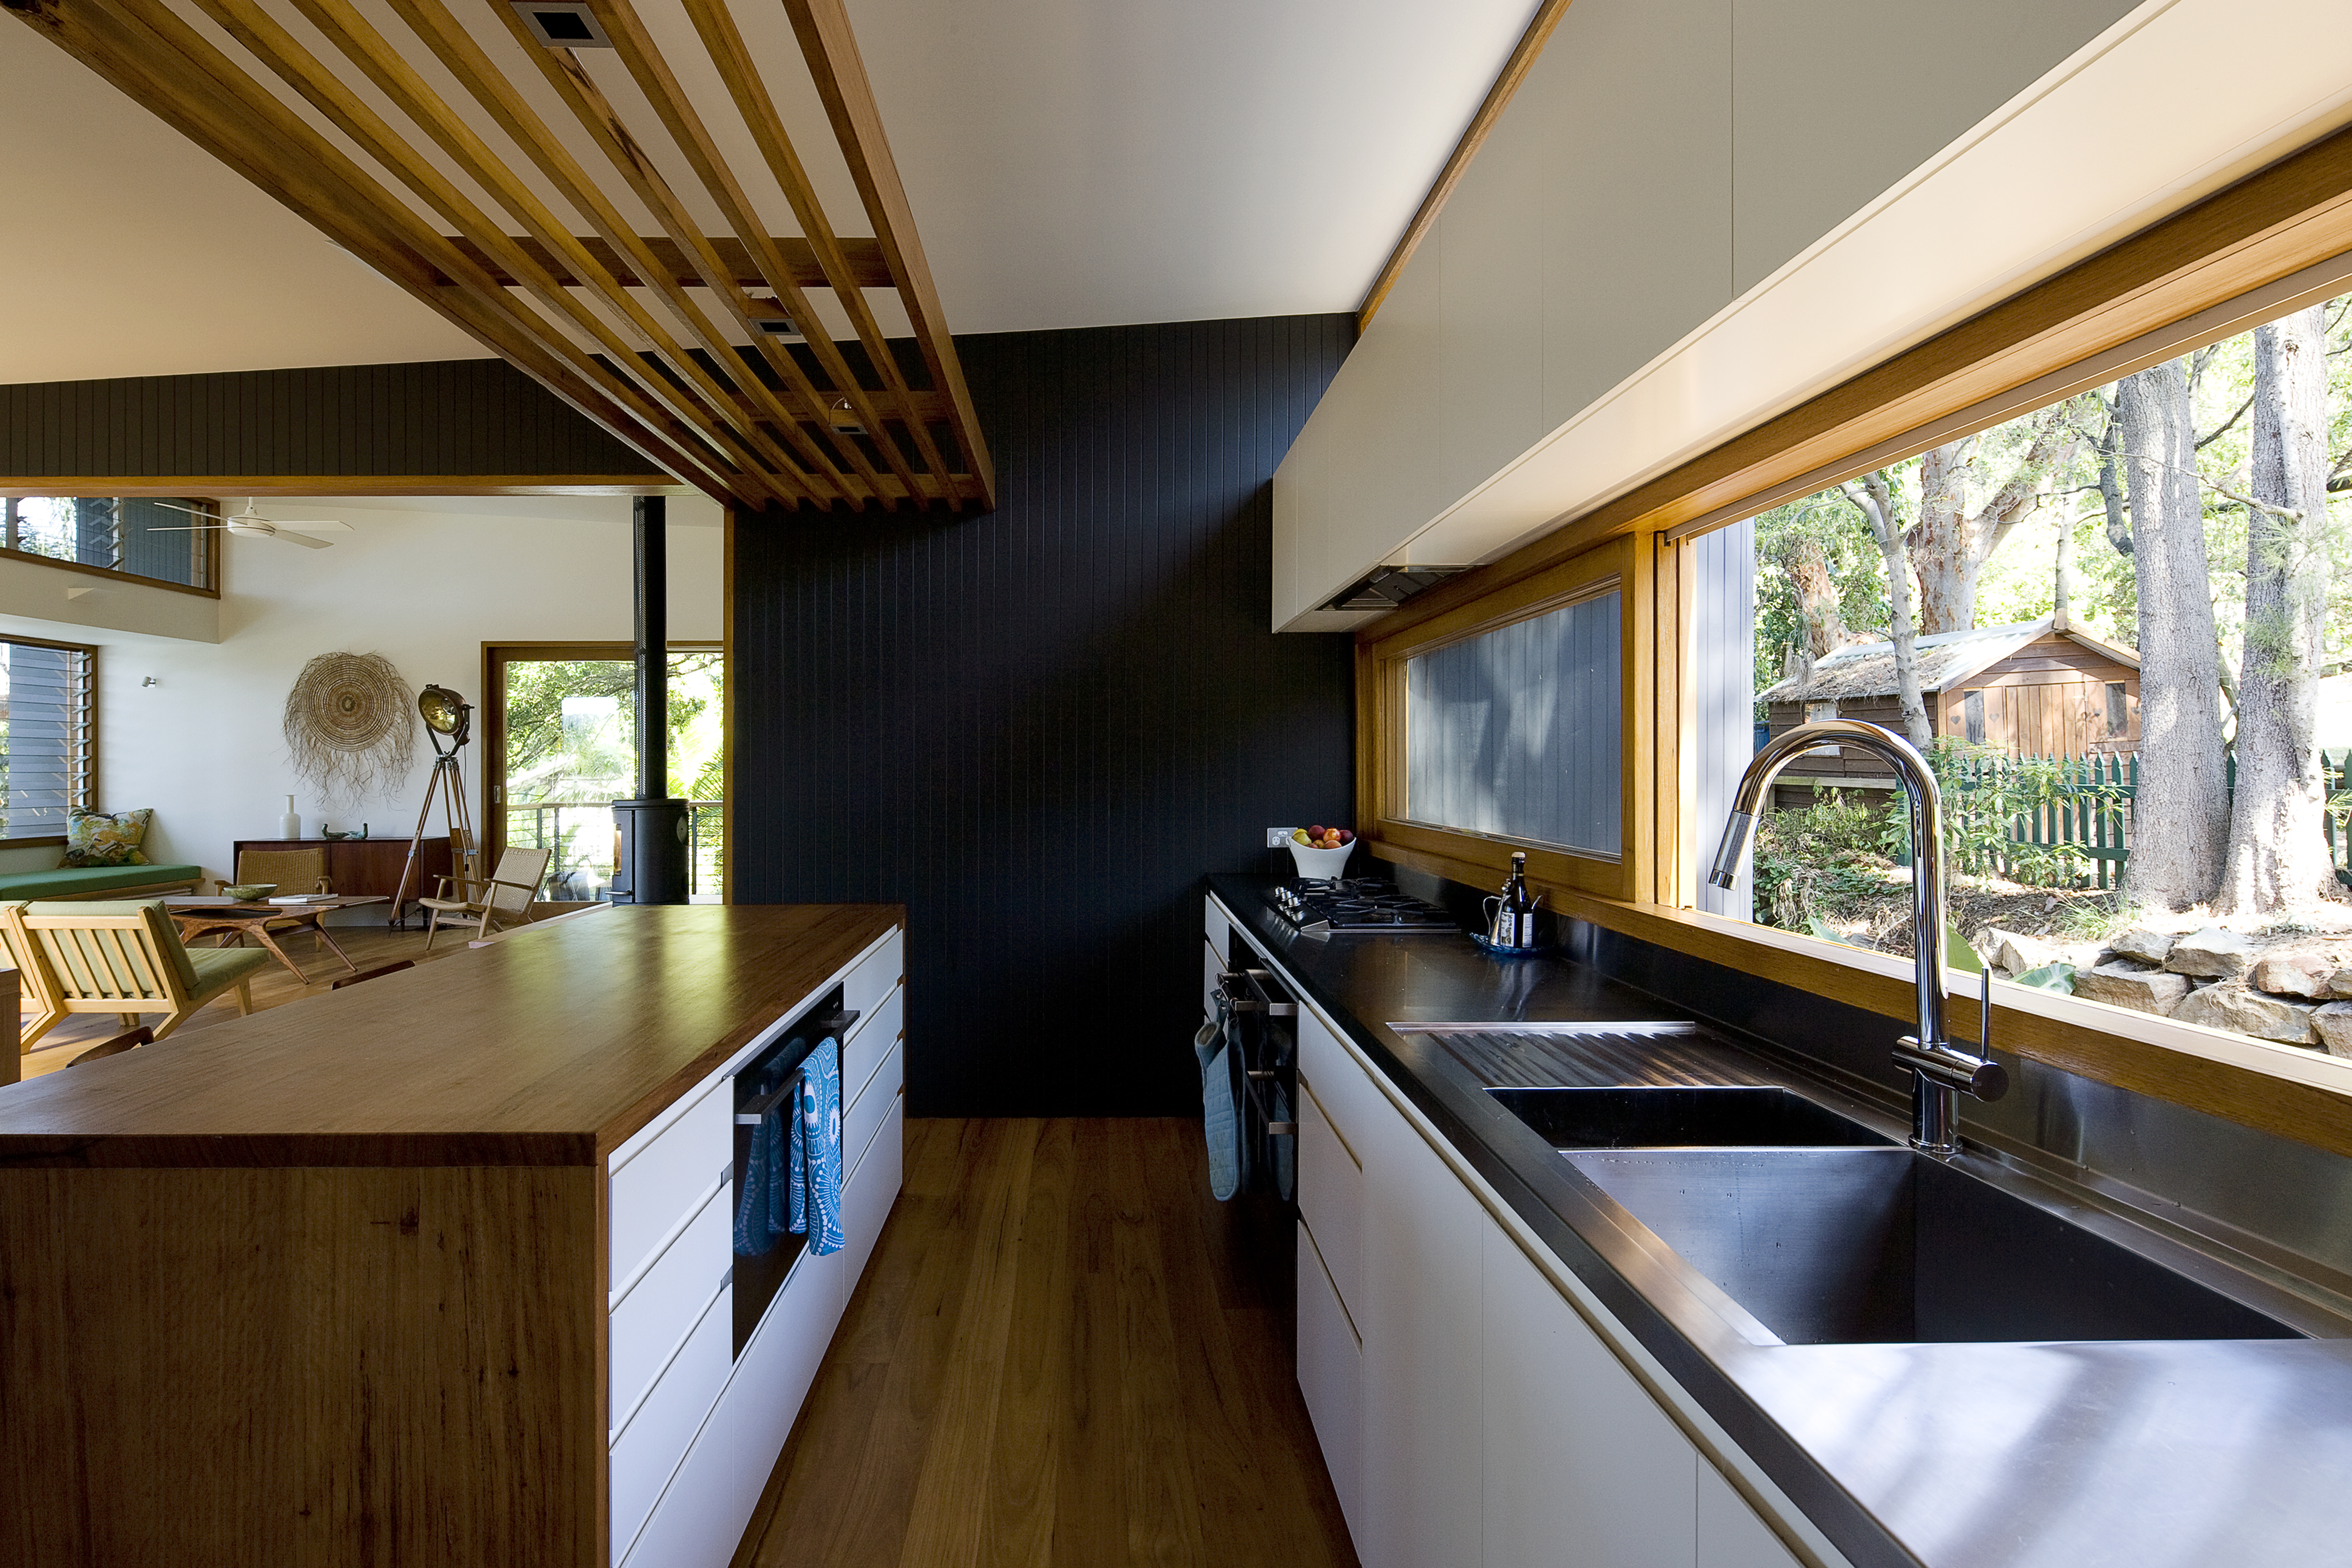 ozone st harbord fine earth joinery Awesome Porcelain Kitchen Sink Australia  Taste